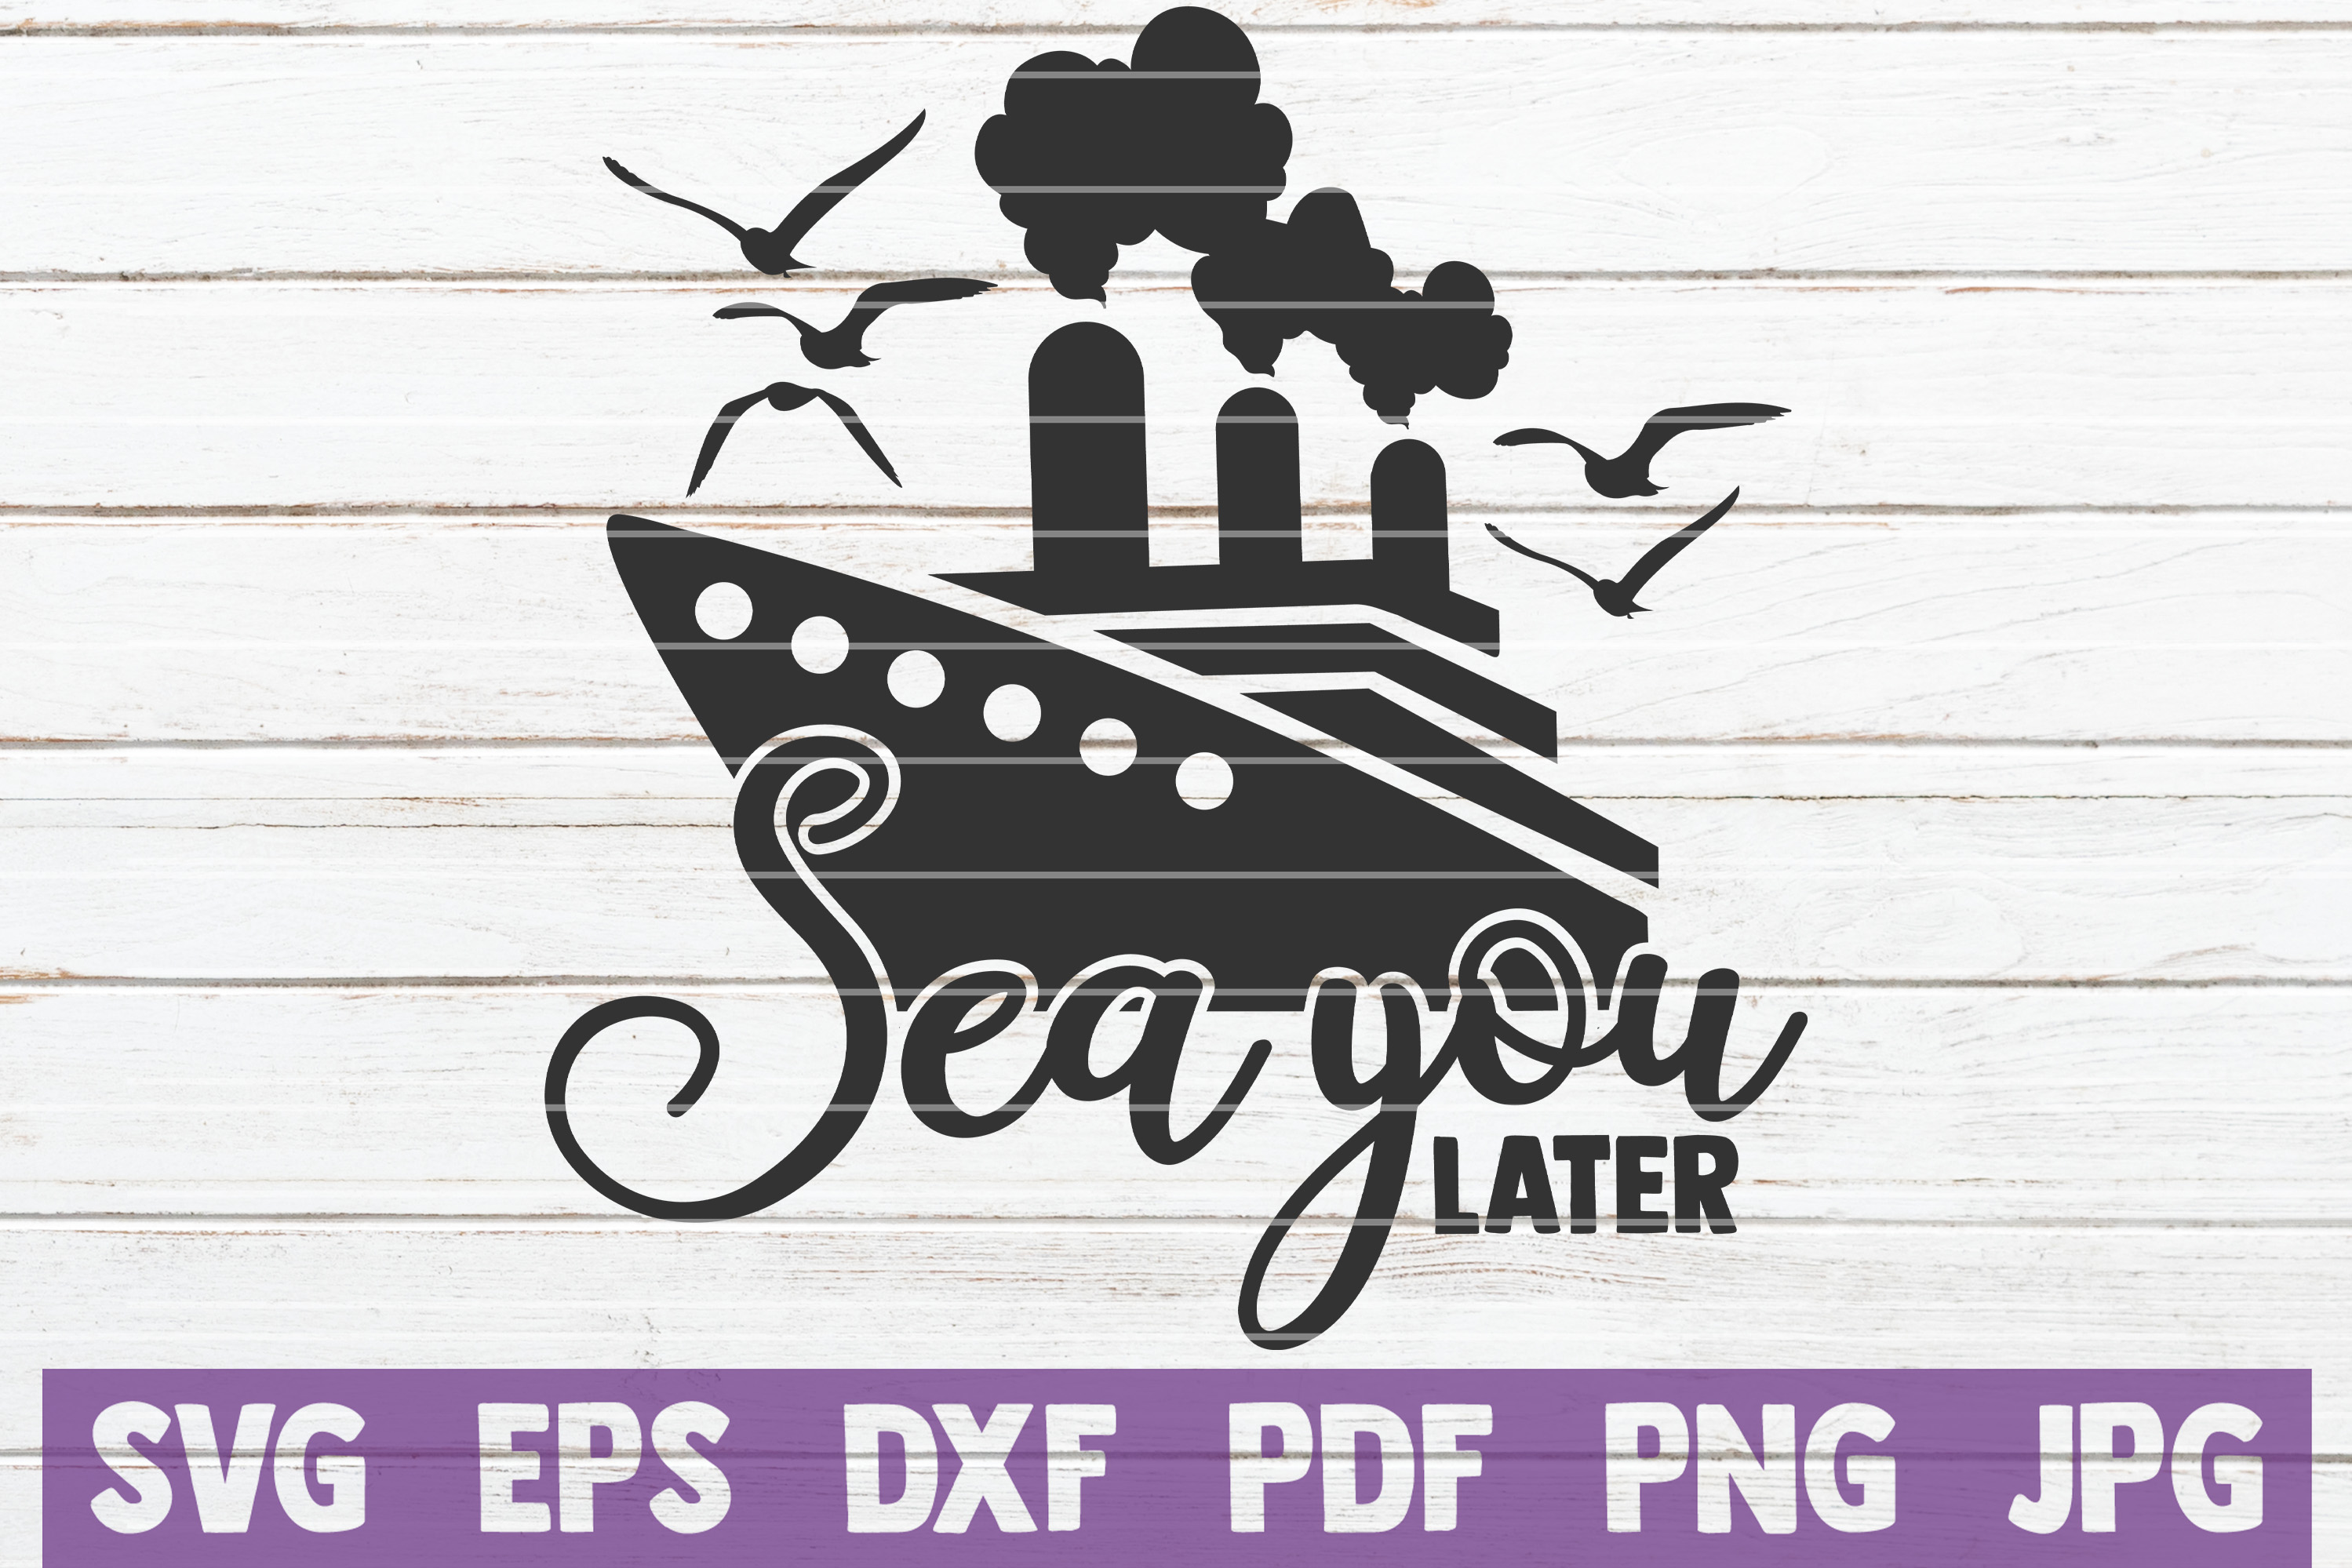 Sea You Later SVG cut file example image 1